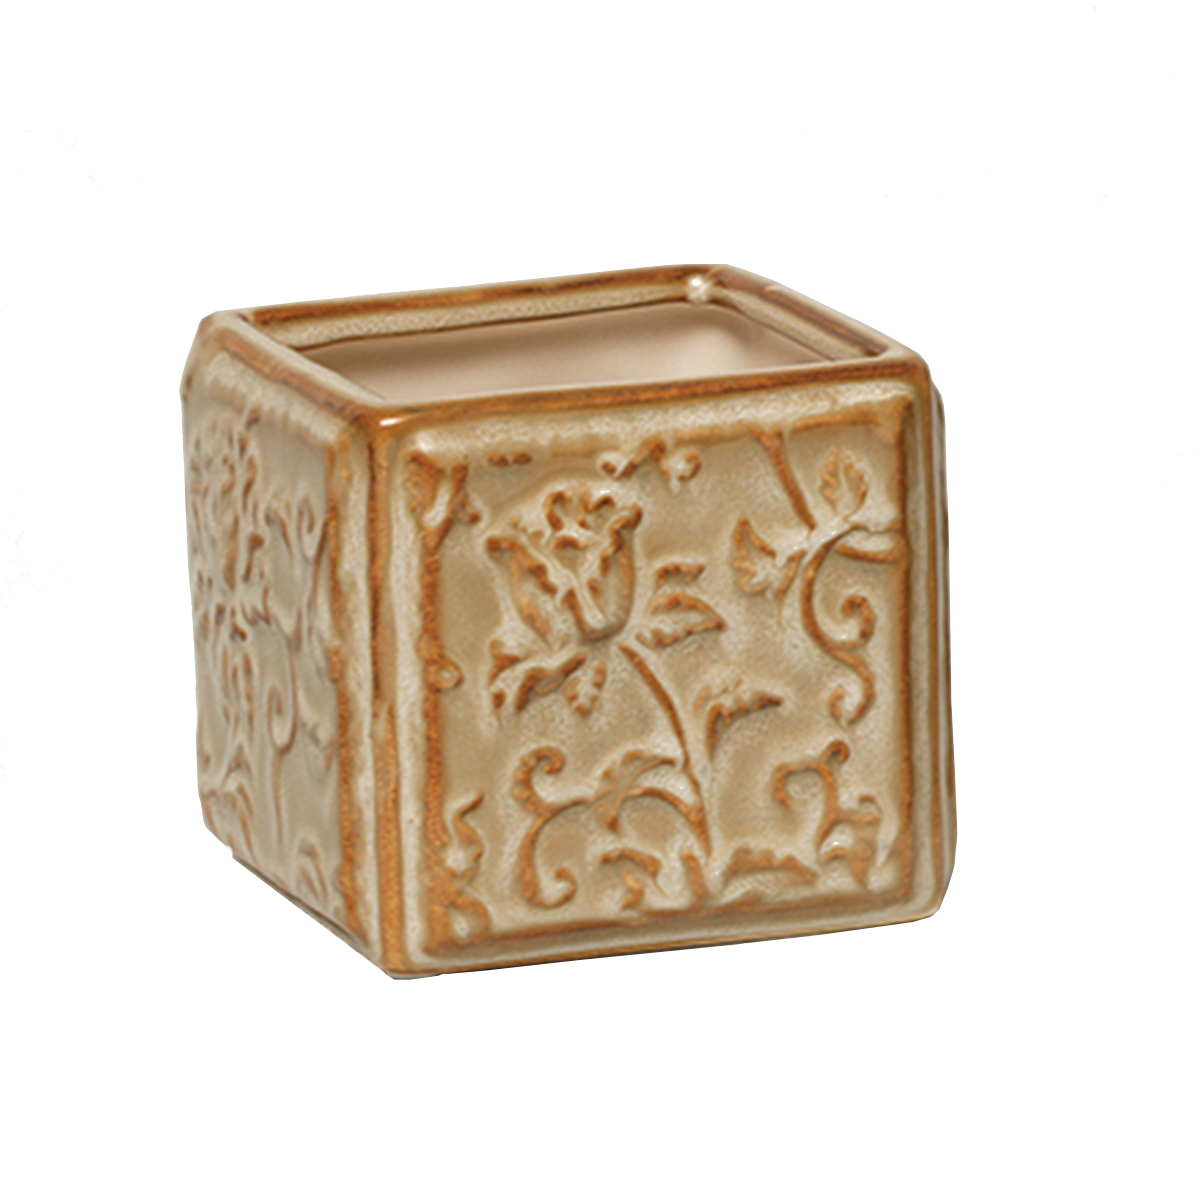 "CERAMIC RECTANGLE FLORAL PLANTER 3.5""X3.5""X3.25"""